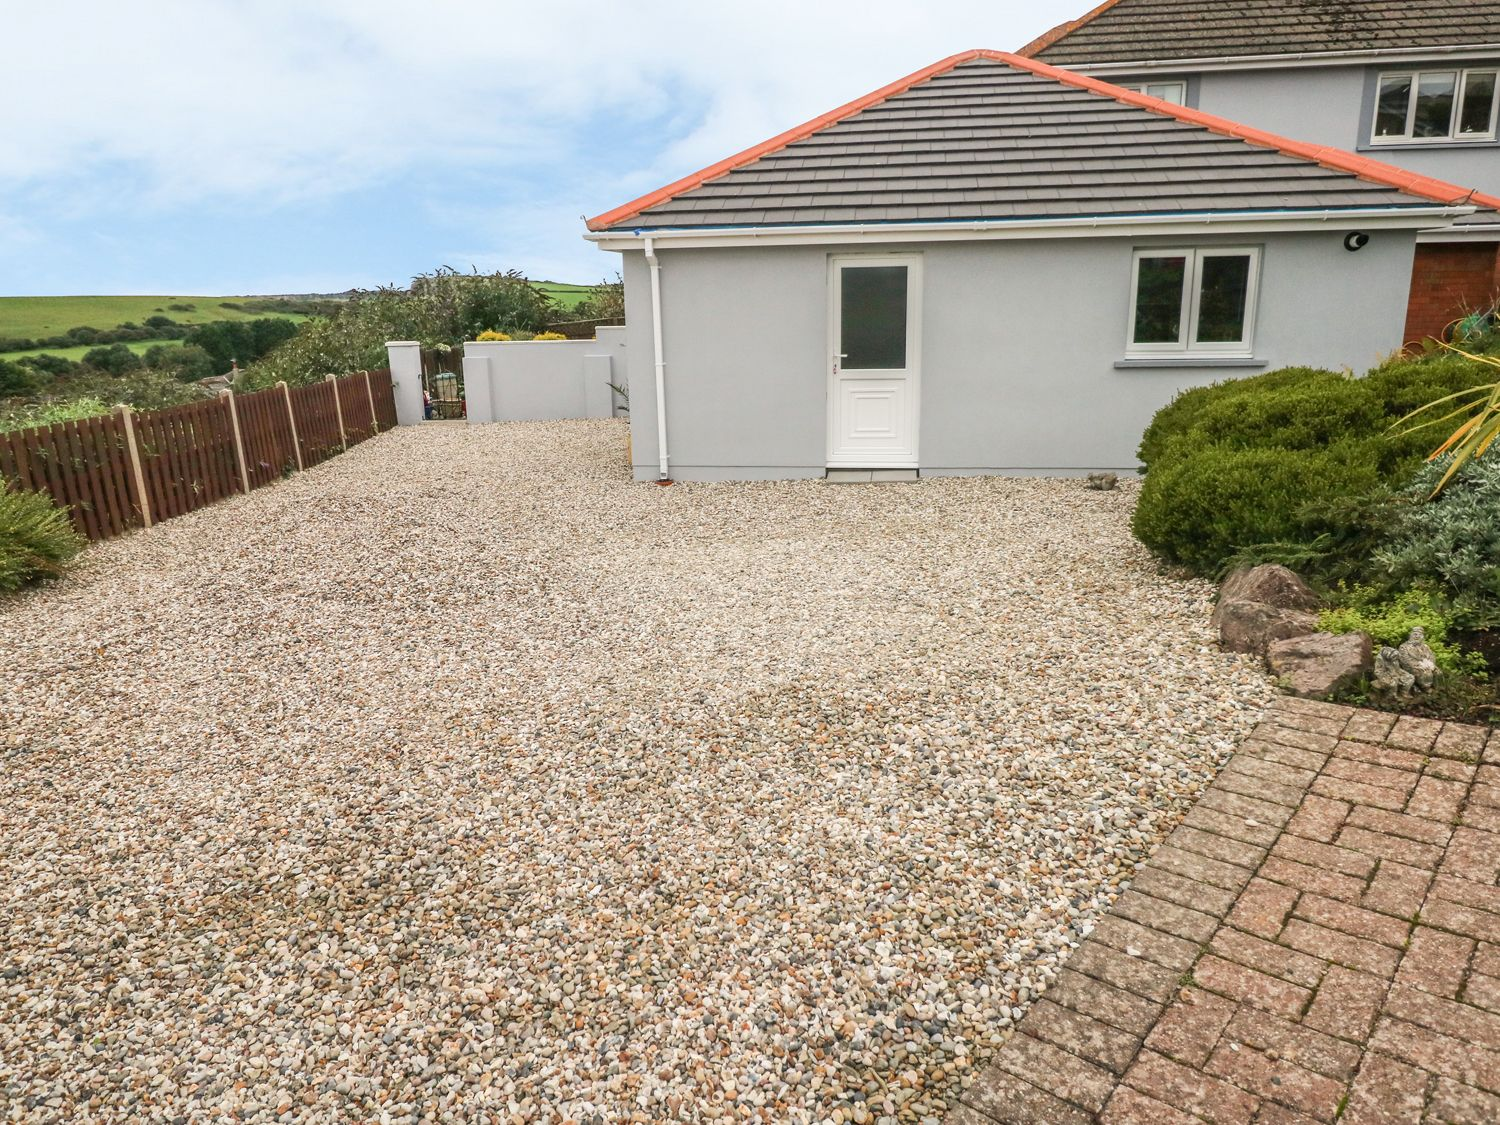 11 Penally Heights - South Wales - 989683 - photo 1